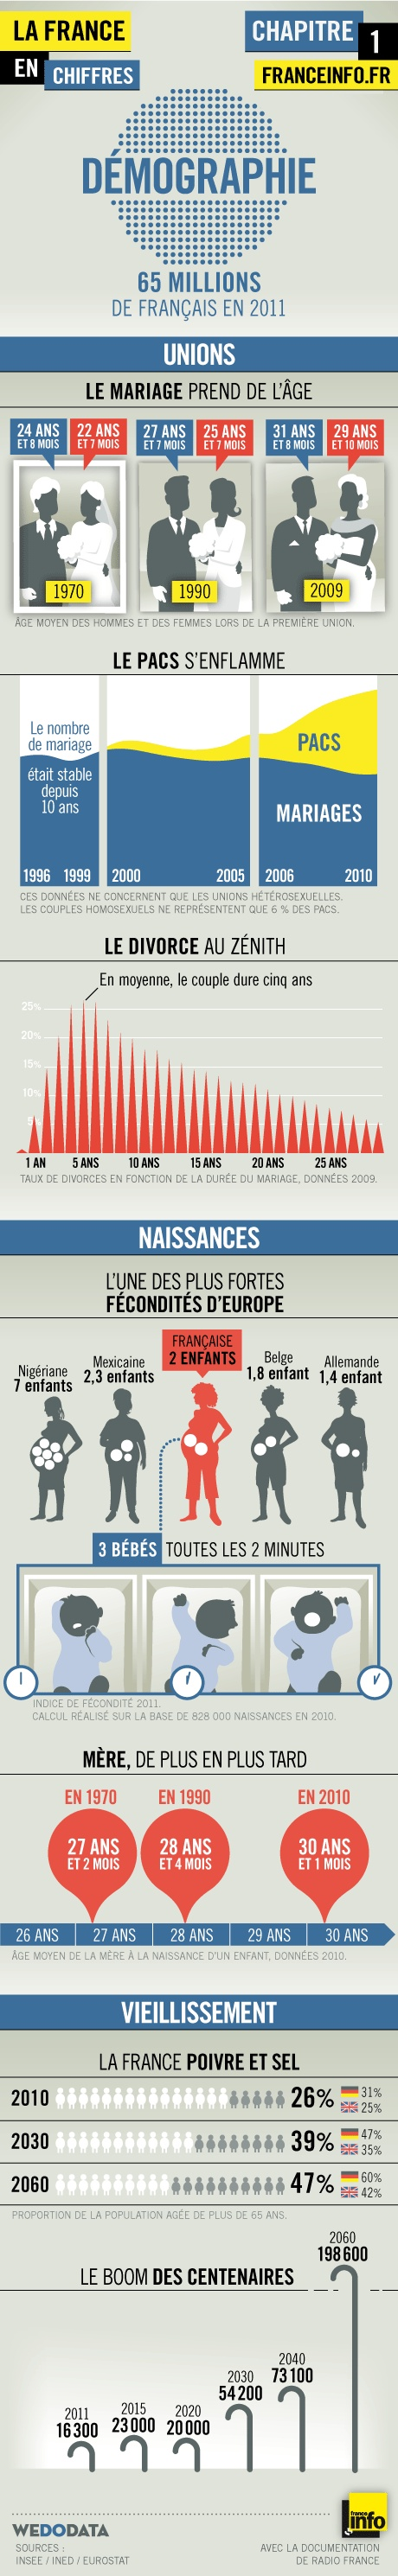 Infographies | La France en chiffres : le couple #APFrench